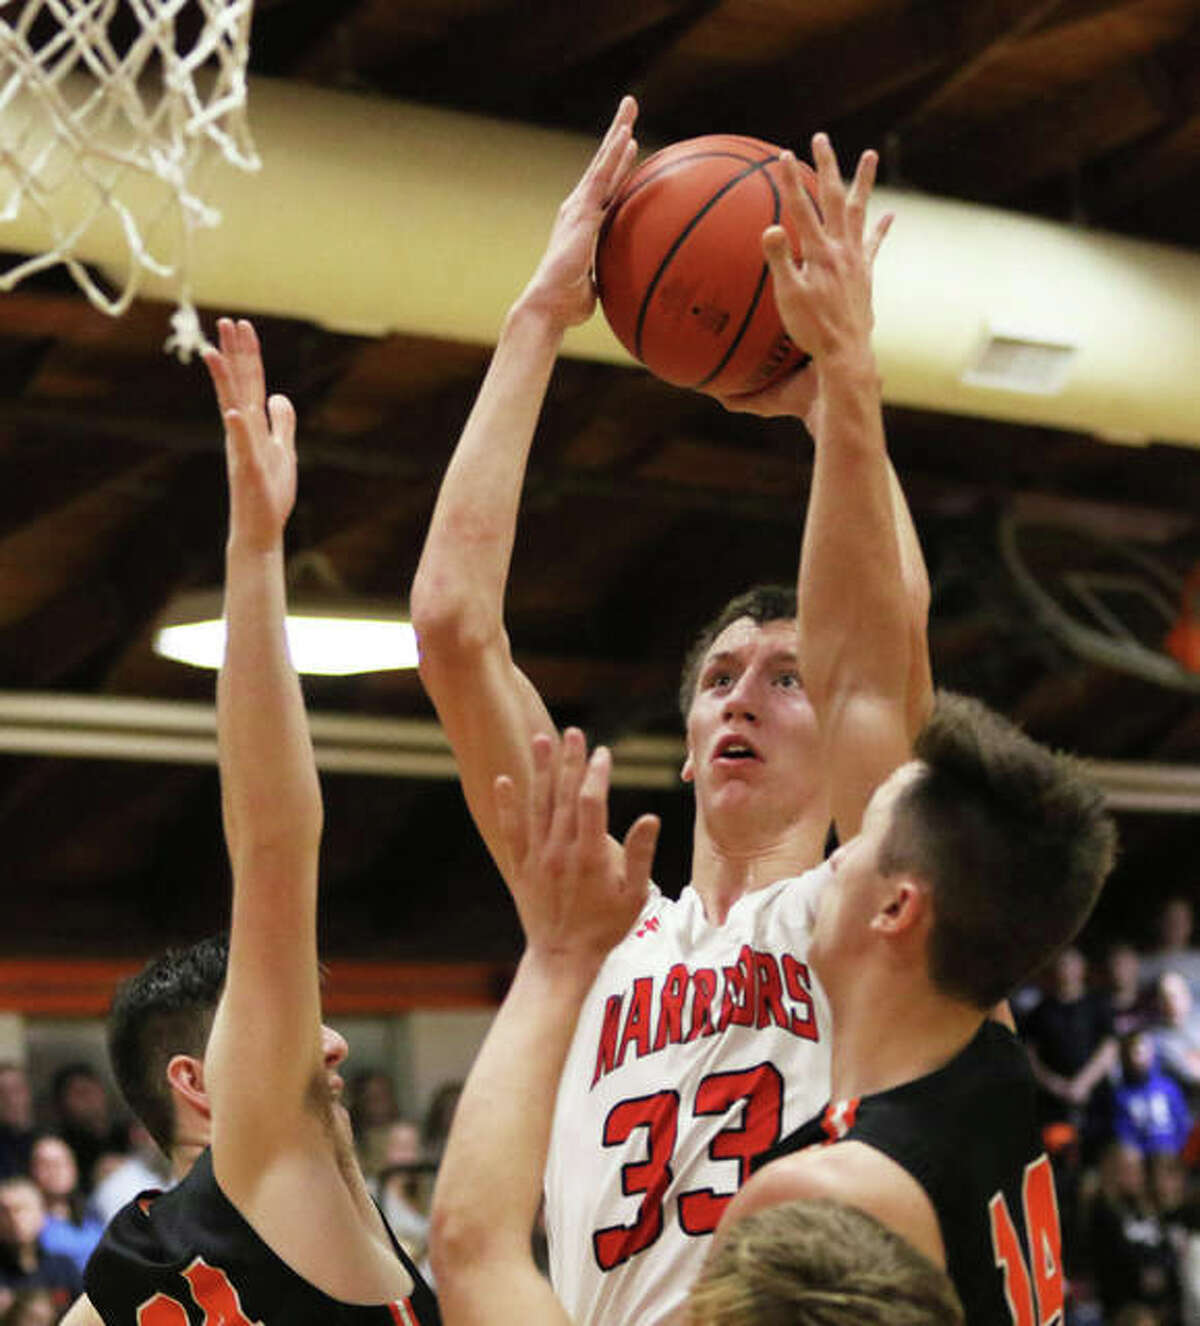 Calhoun's Corey Nelson (33) shoots over a pair of Raymond Lincolnwood defenders during the Warriors' victory in a Class 1A regional championship game last season in Raymond.